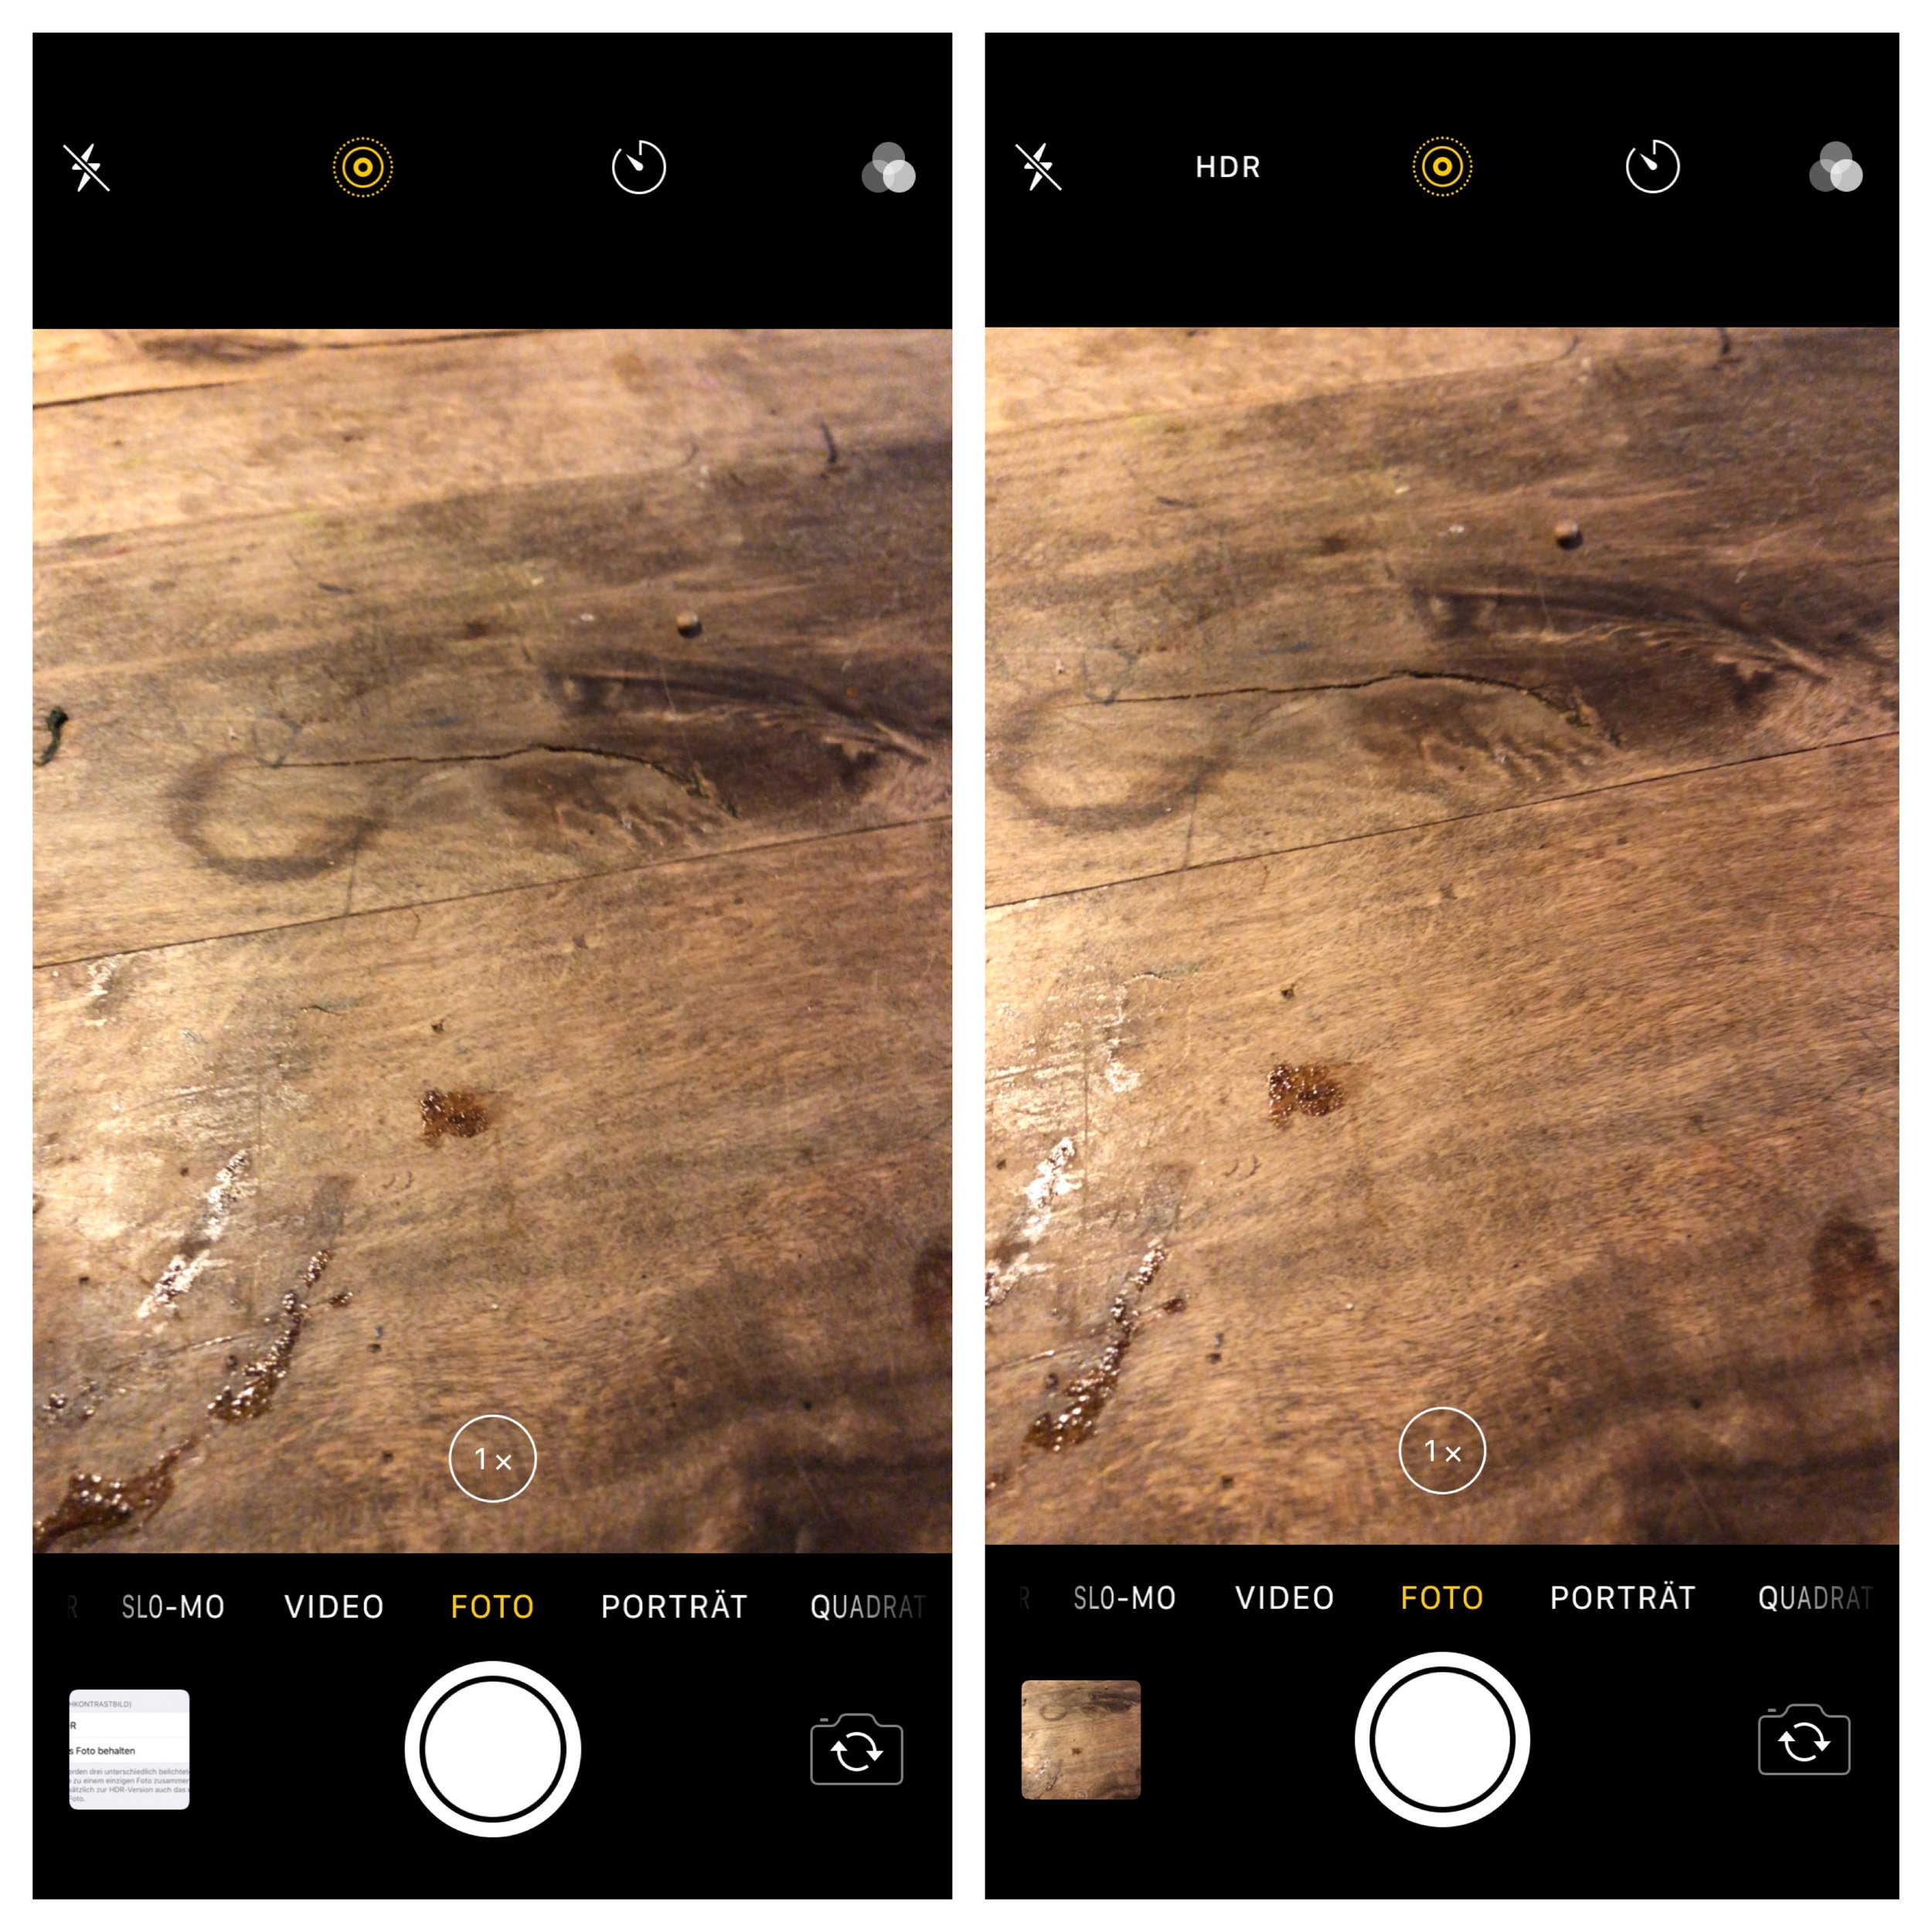 The camera app without the HDR-option (left) and after activating it.